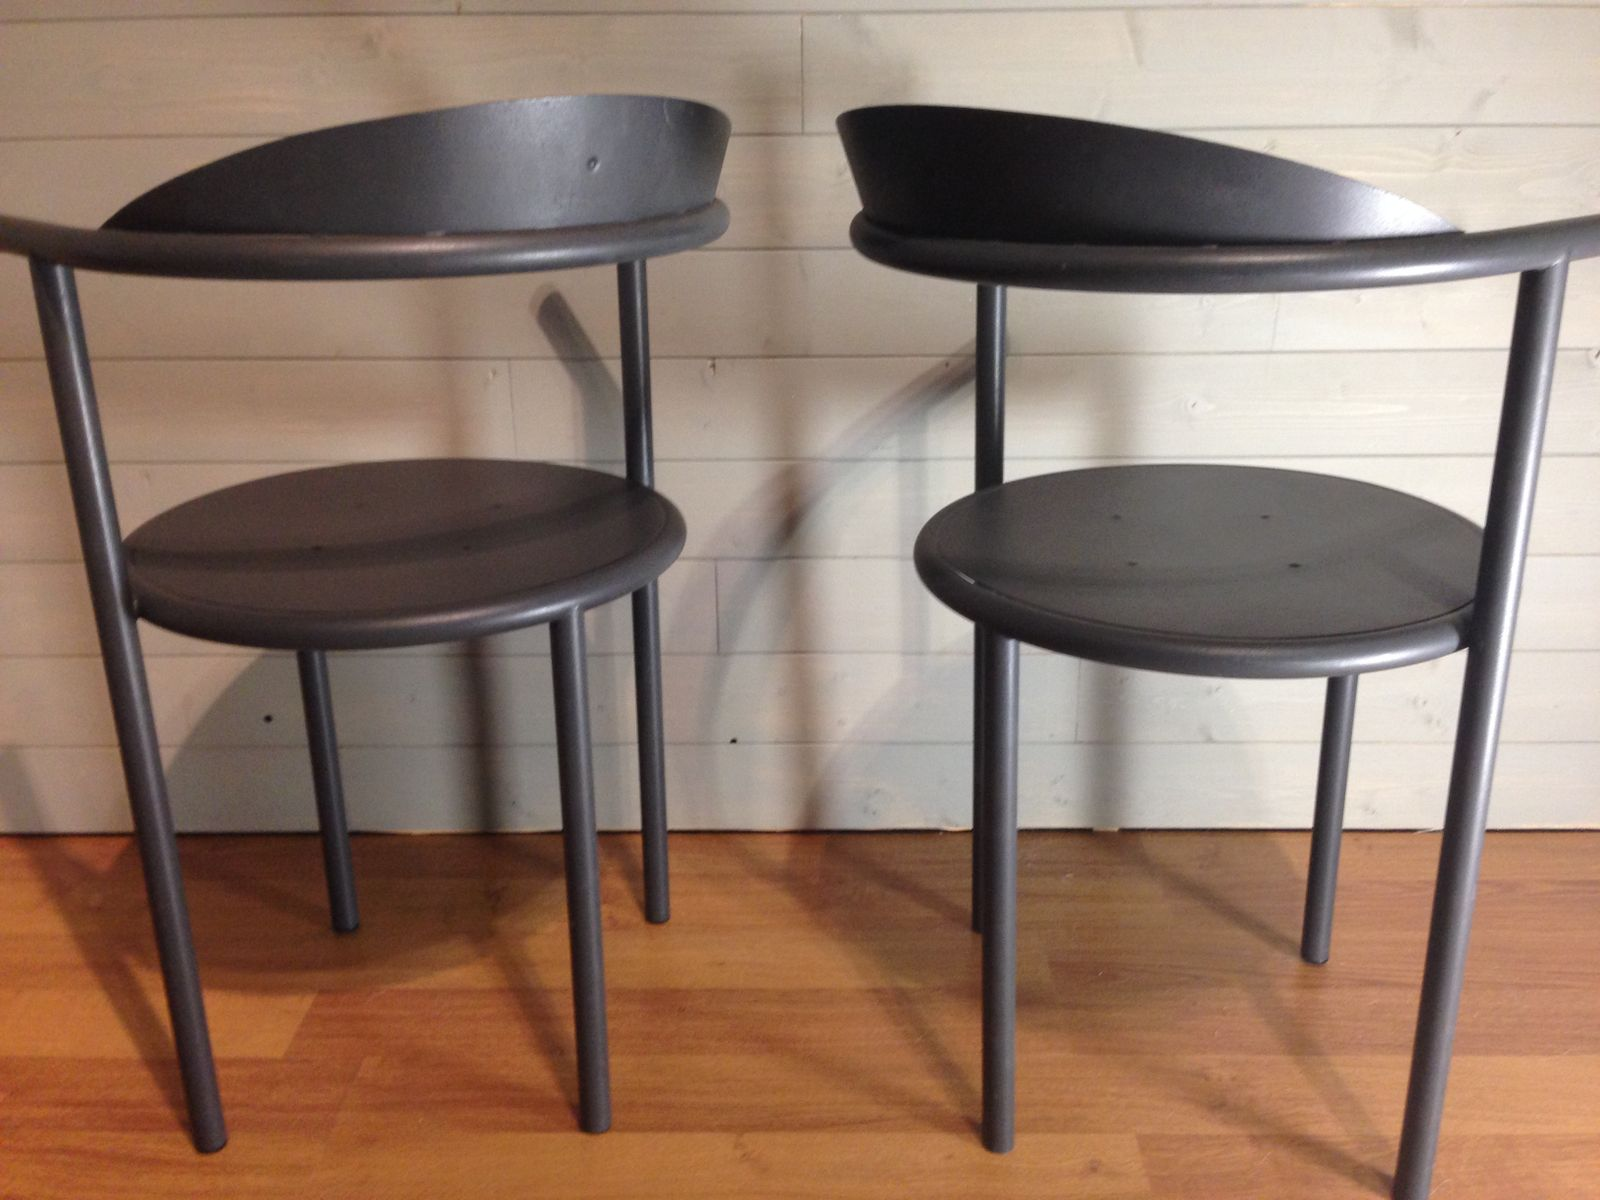 dining chairs by philippe starck 1987 set of 2 for sale On chaise japonaise